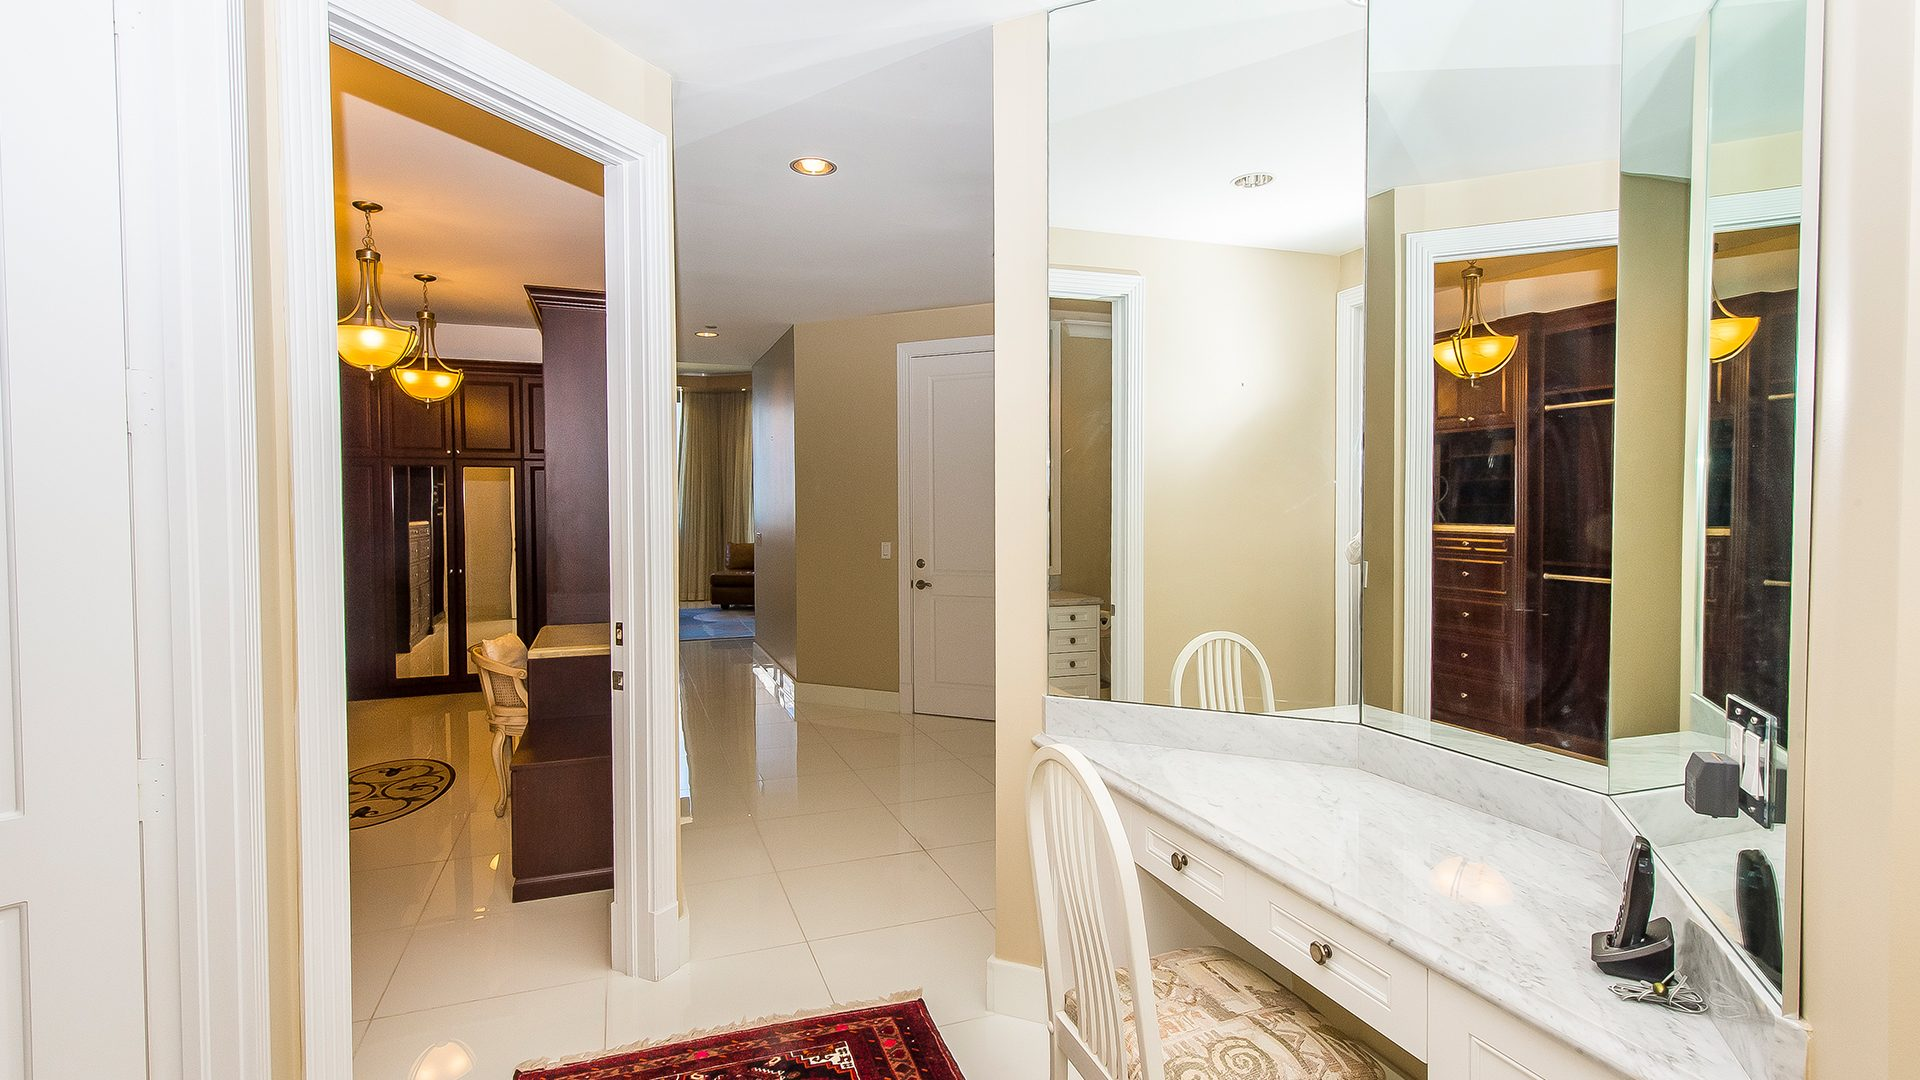 Residence 507 at Bellaria, Luxury Oceanfront Condominiums in Palm Beach, Florida 33480.